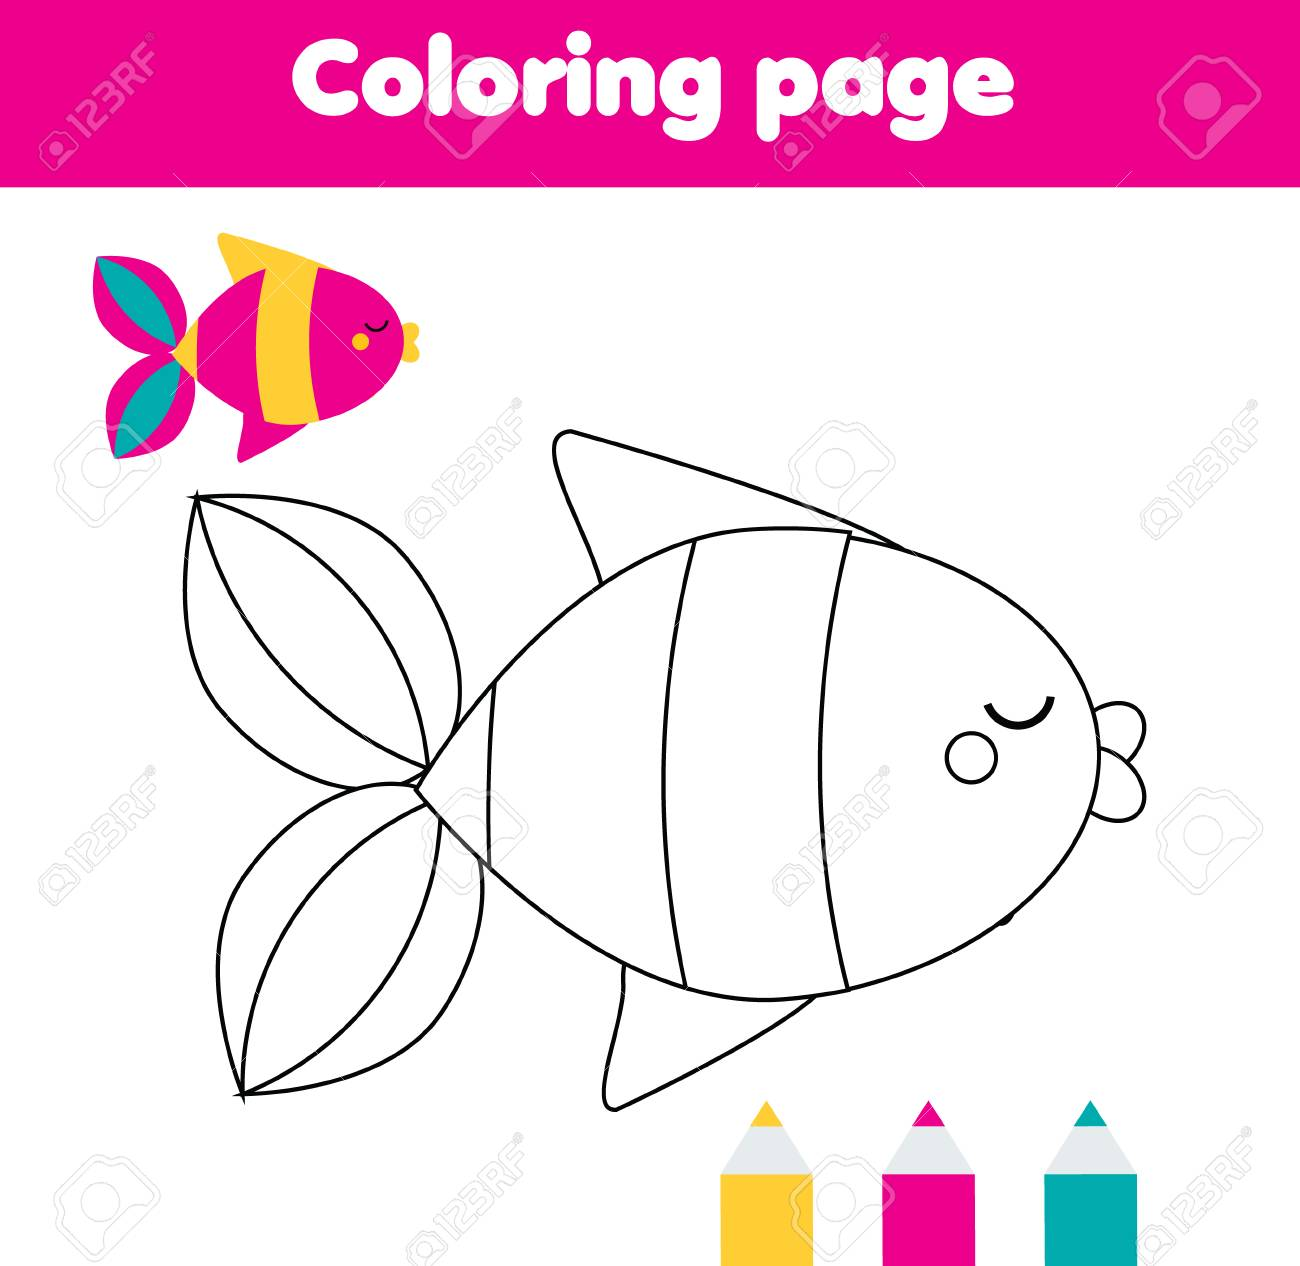 Coloring Page With Fish Drawing Kids Activity For Toddlers